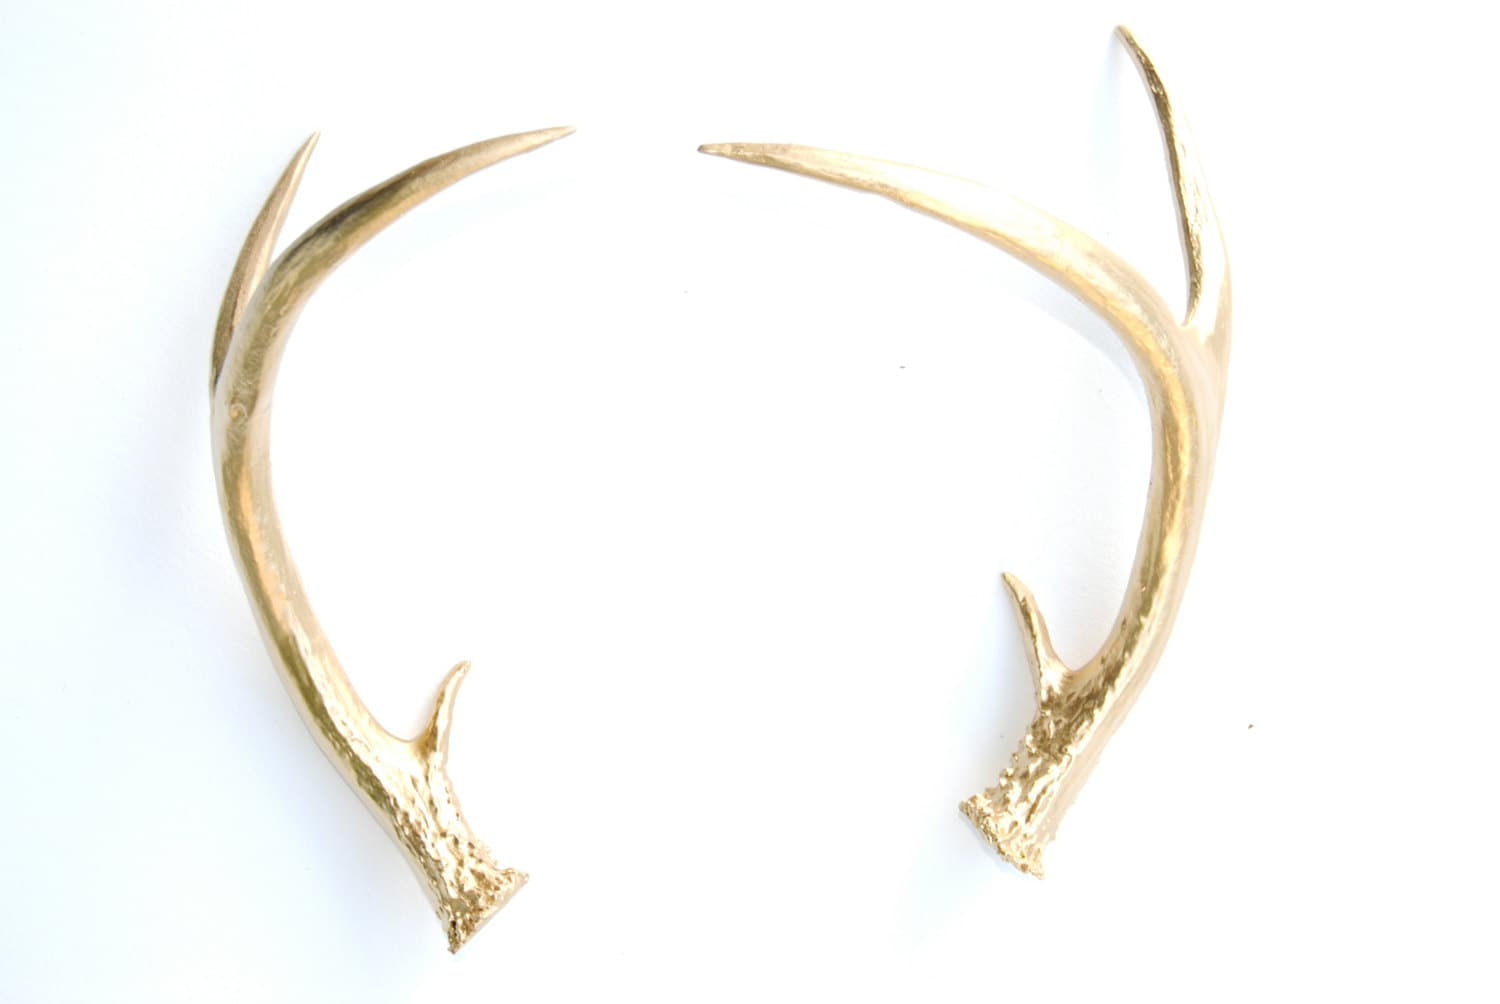 Faux Taxidermy Gold Antler Decor Gold Resin Unique Deer